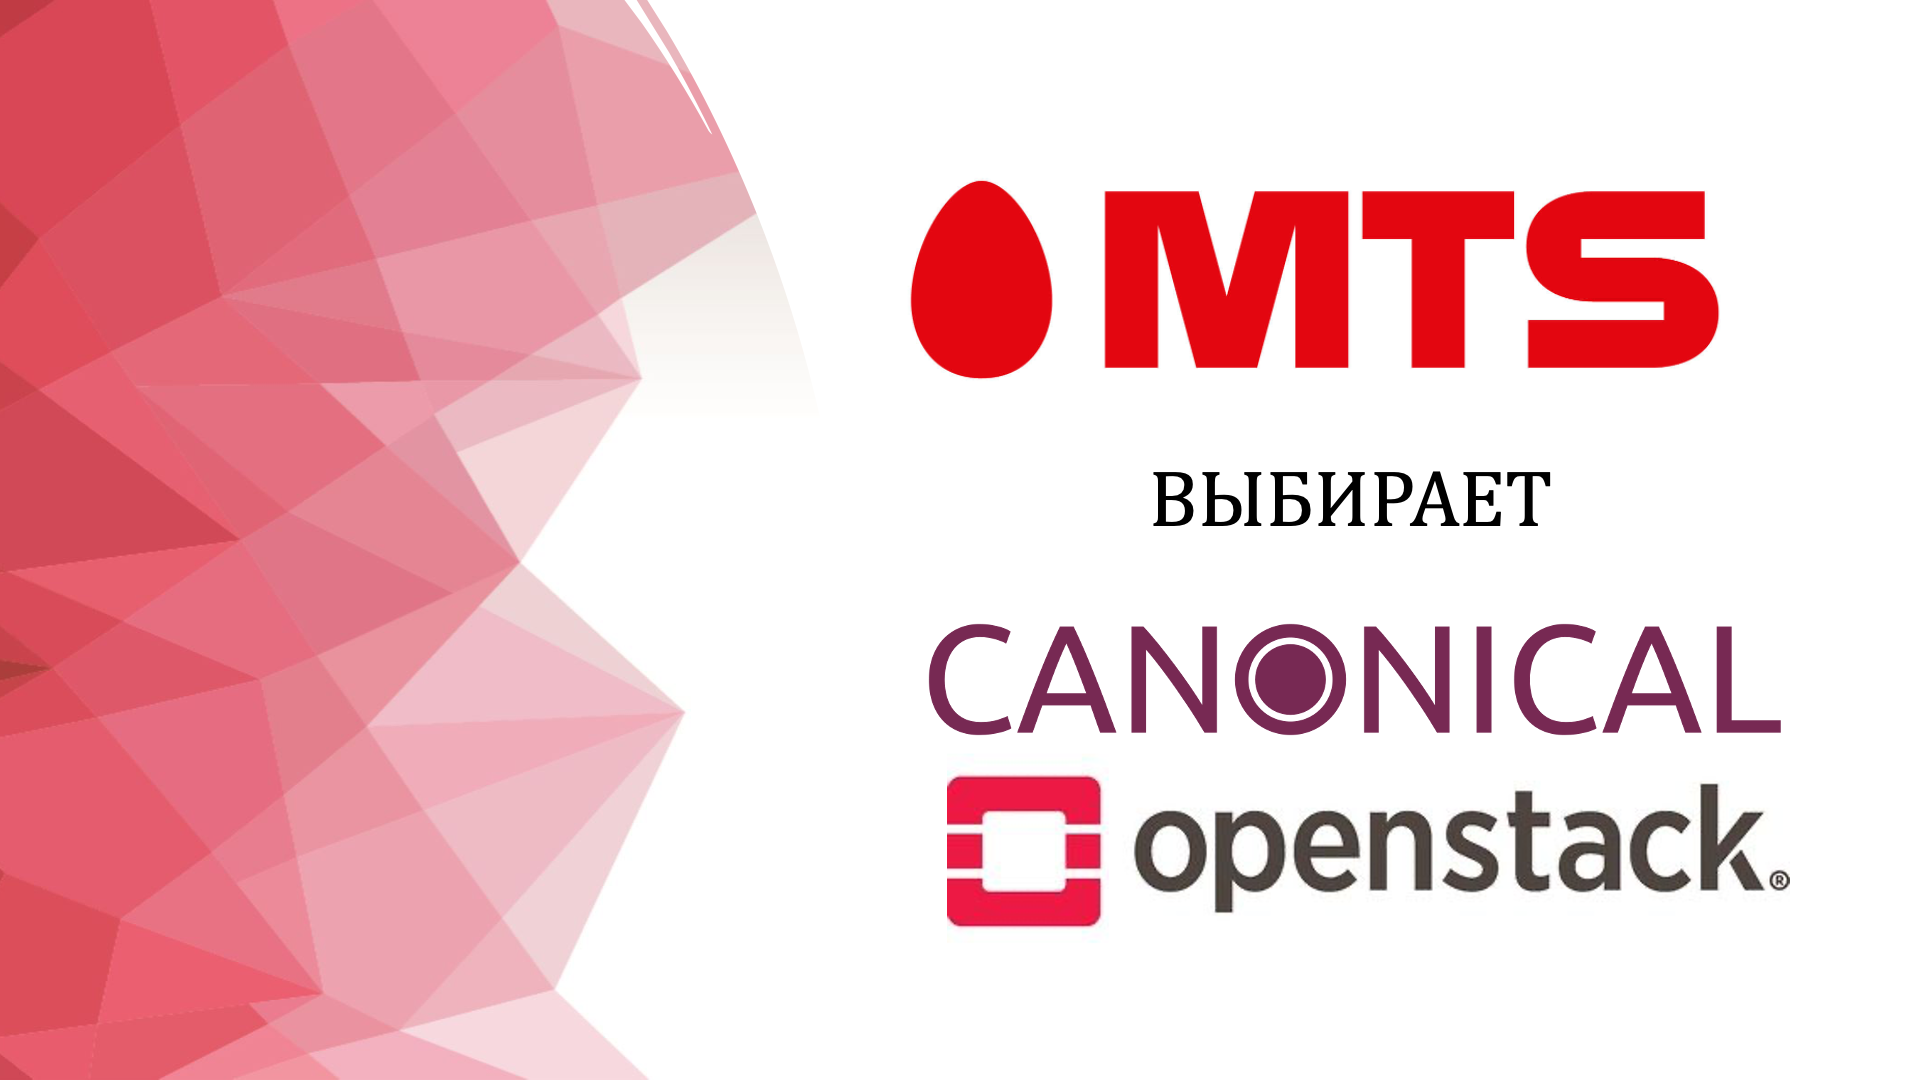 MTS выбрал Canonical Openstack